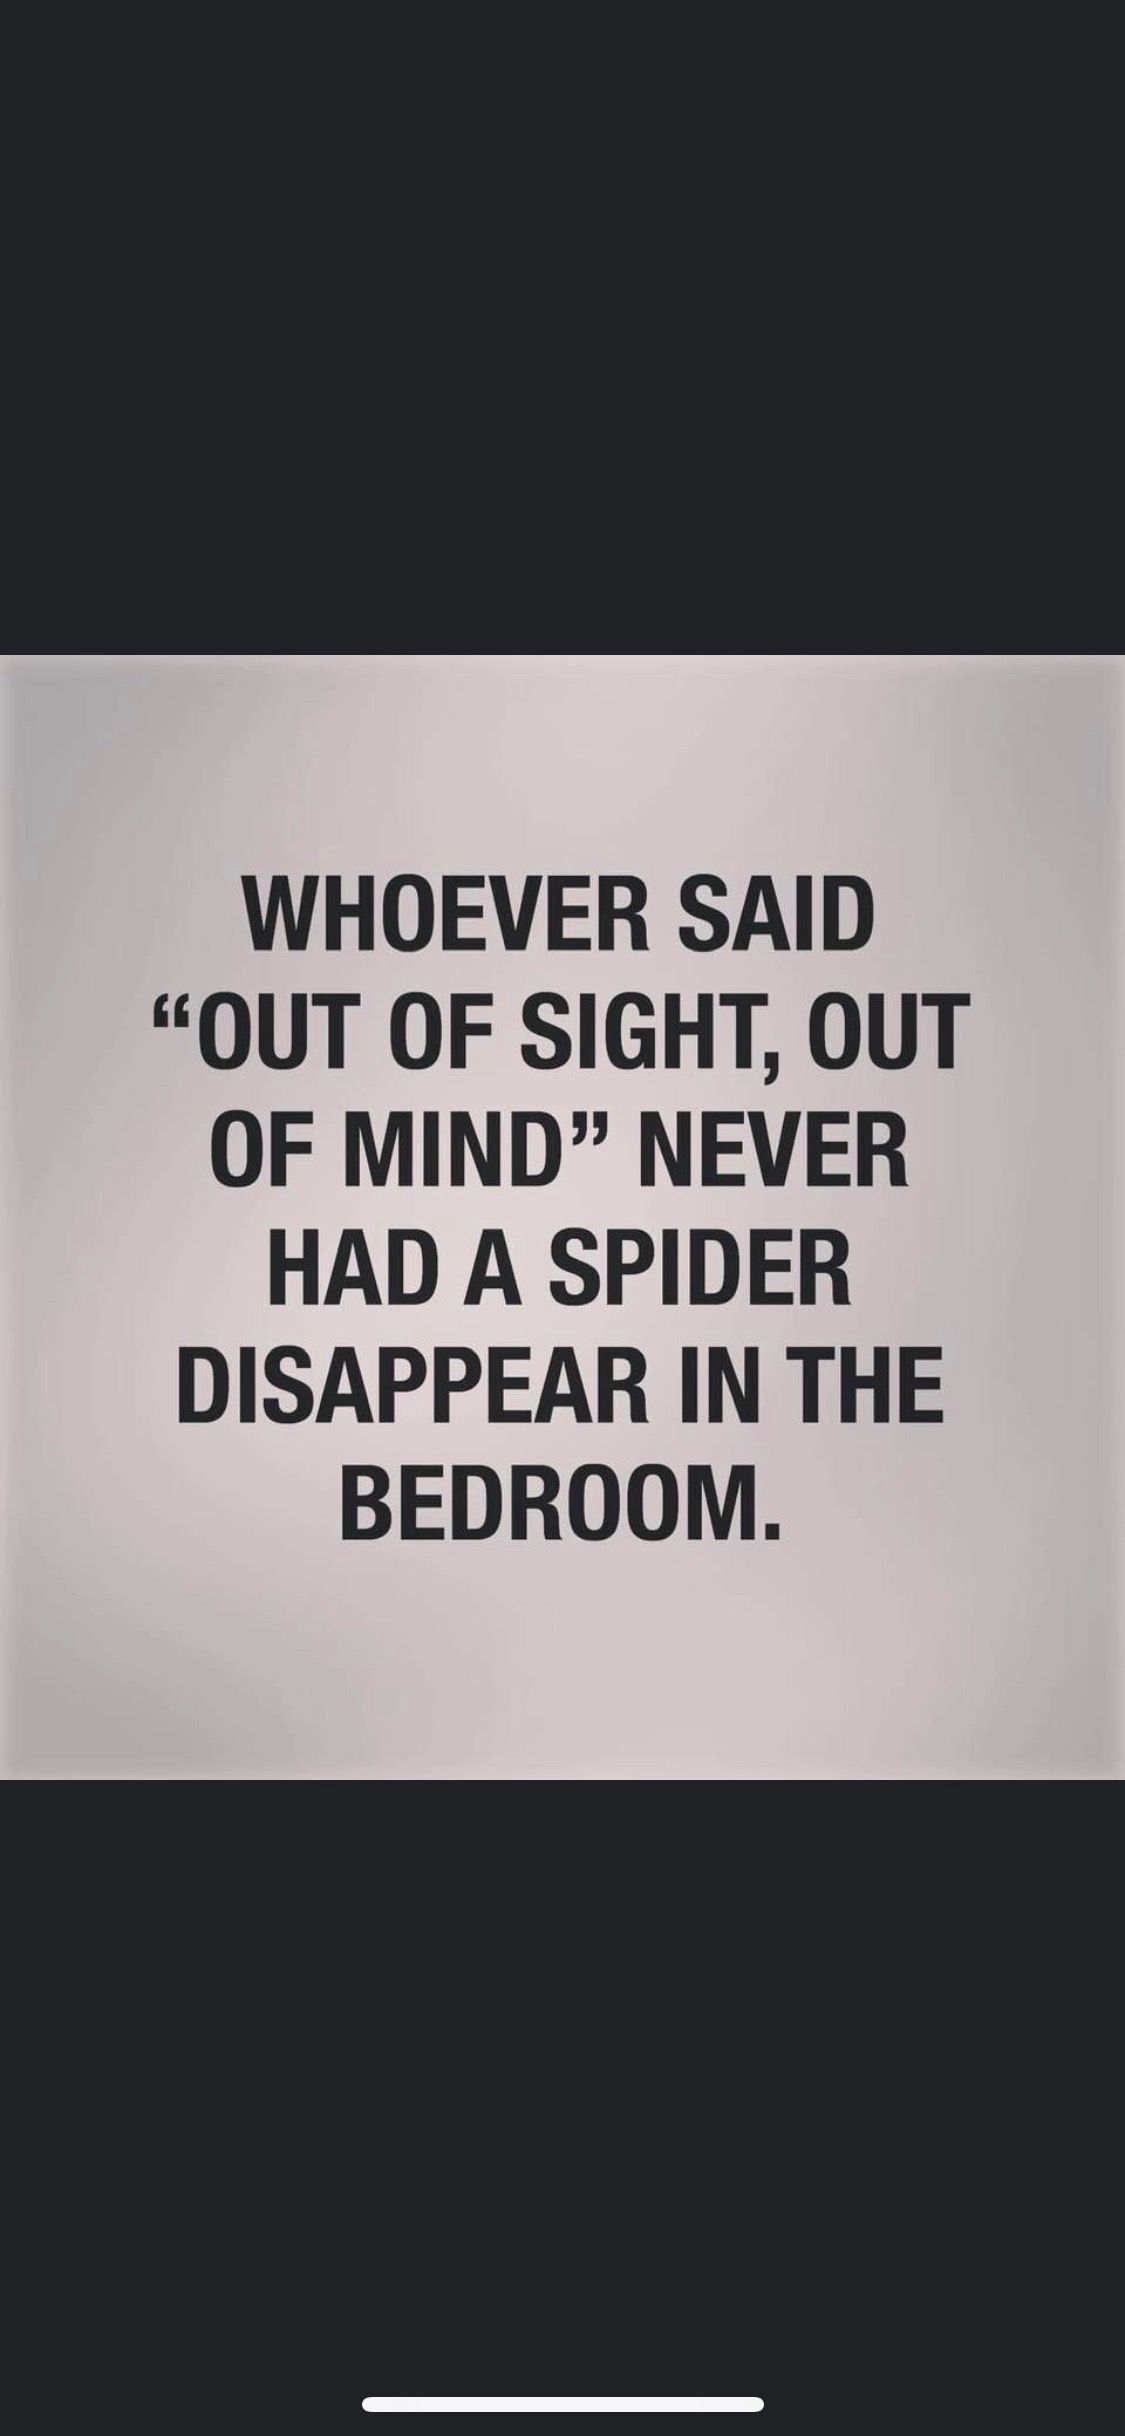 Pin By Yuki Renee On Humor Funny Quotes Words Haha Funny